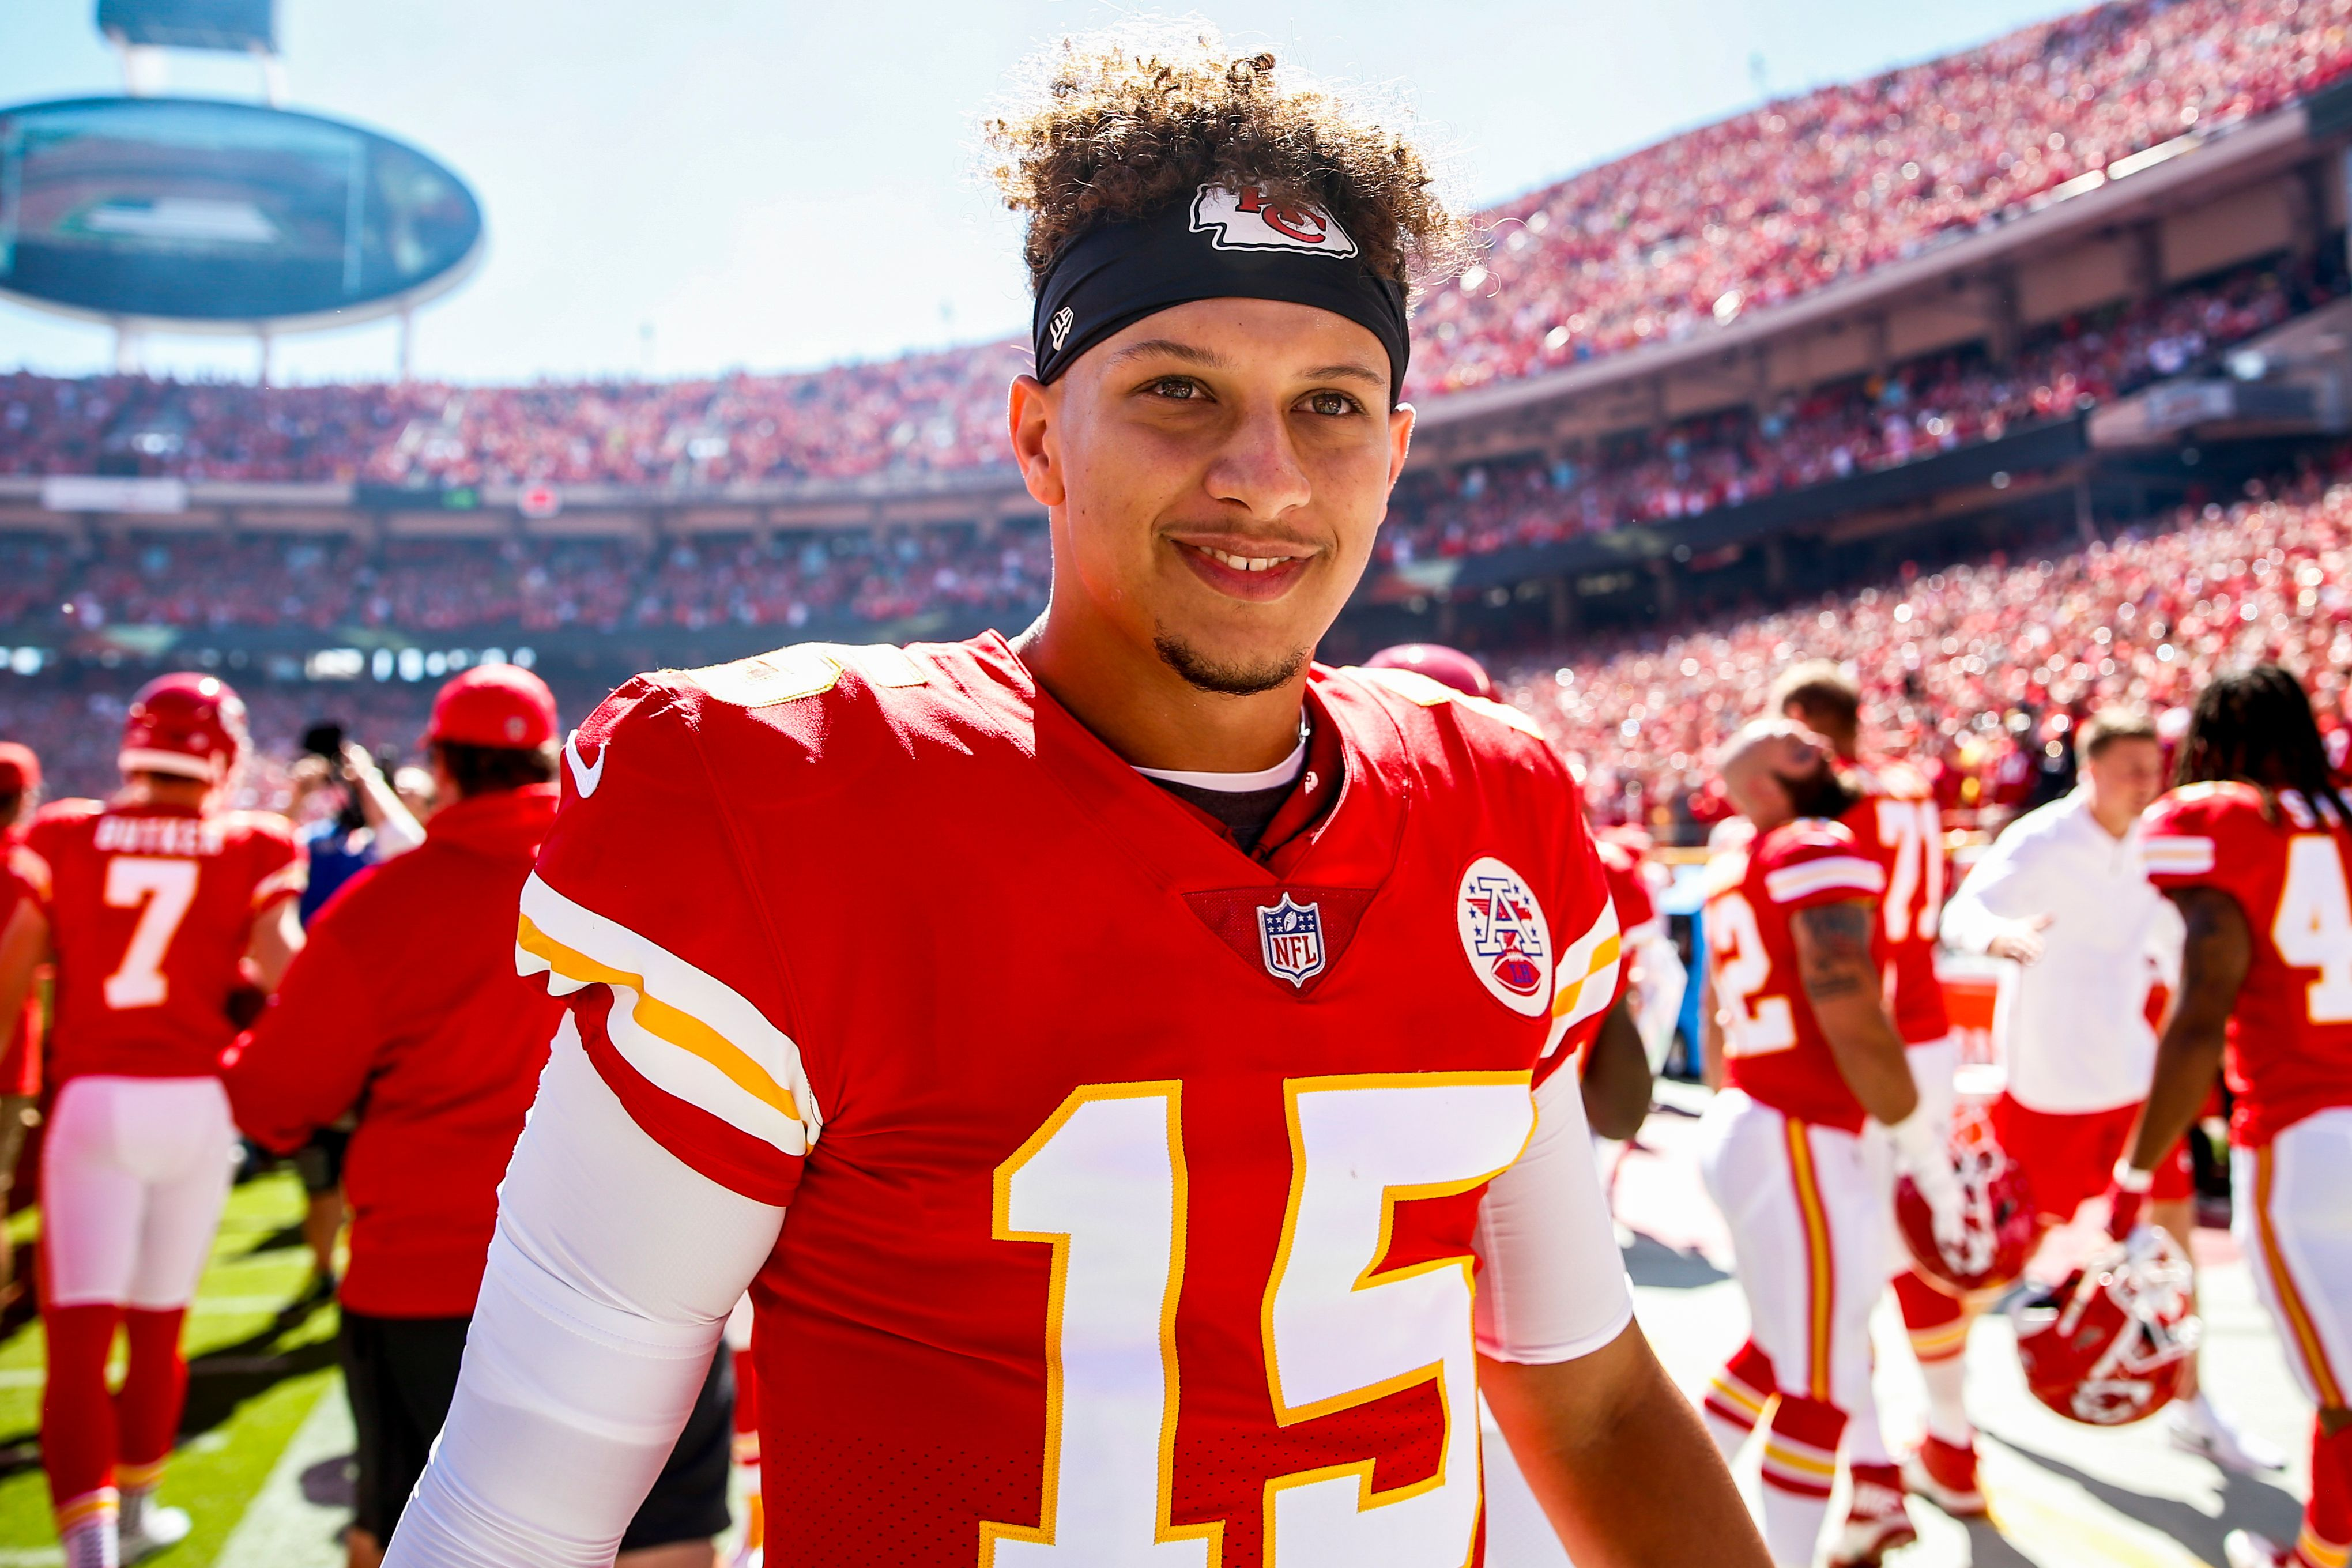 Patrick Mahomes during their game against the San Francisco 49ers at Arrowhead Stadium on September 23rd, 2018 in Kansas City, Missouri.   Source: Getty Images